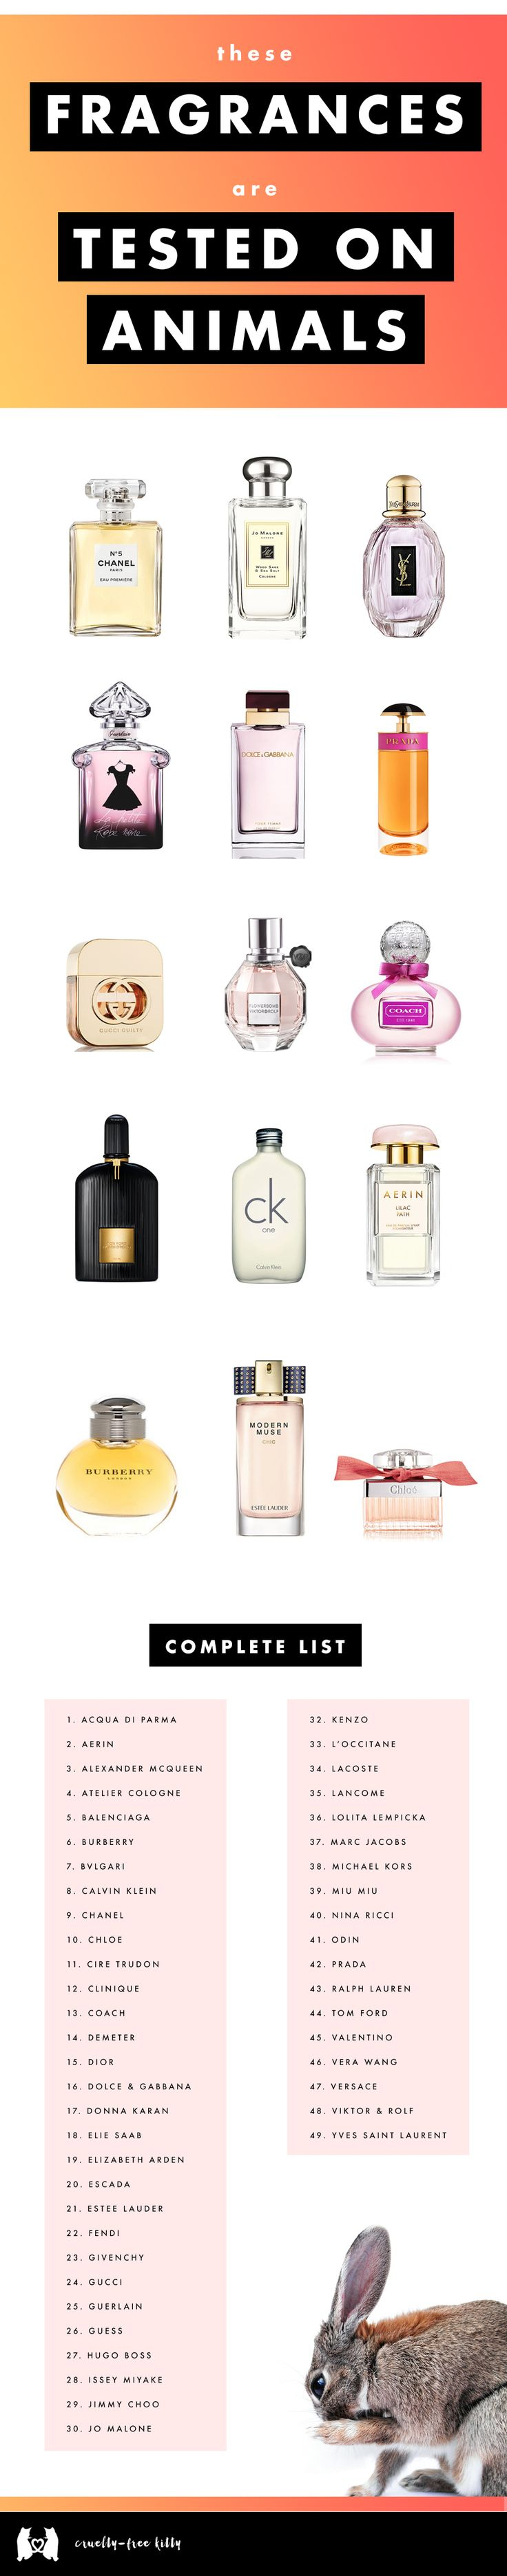 Cruelty-Free Perfume Guide: Fragrance Companies That Do And Don't Test On…